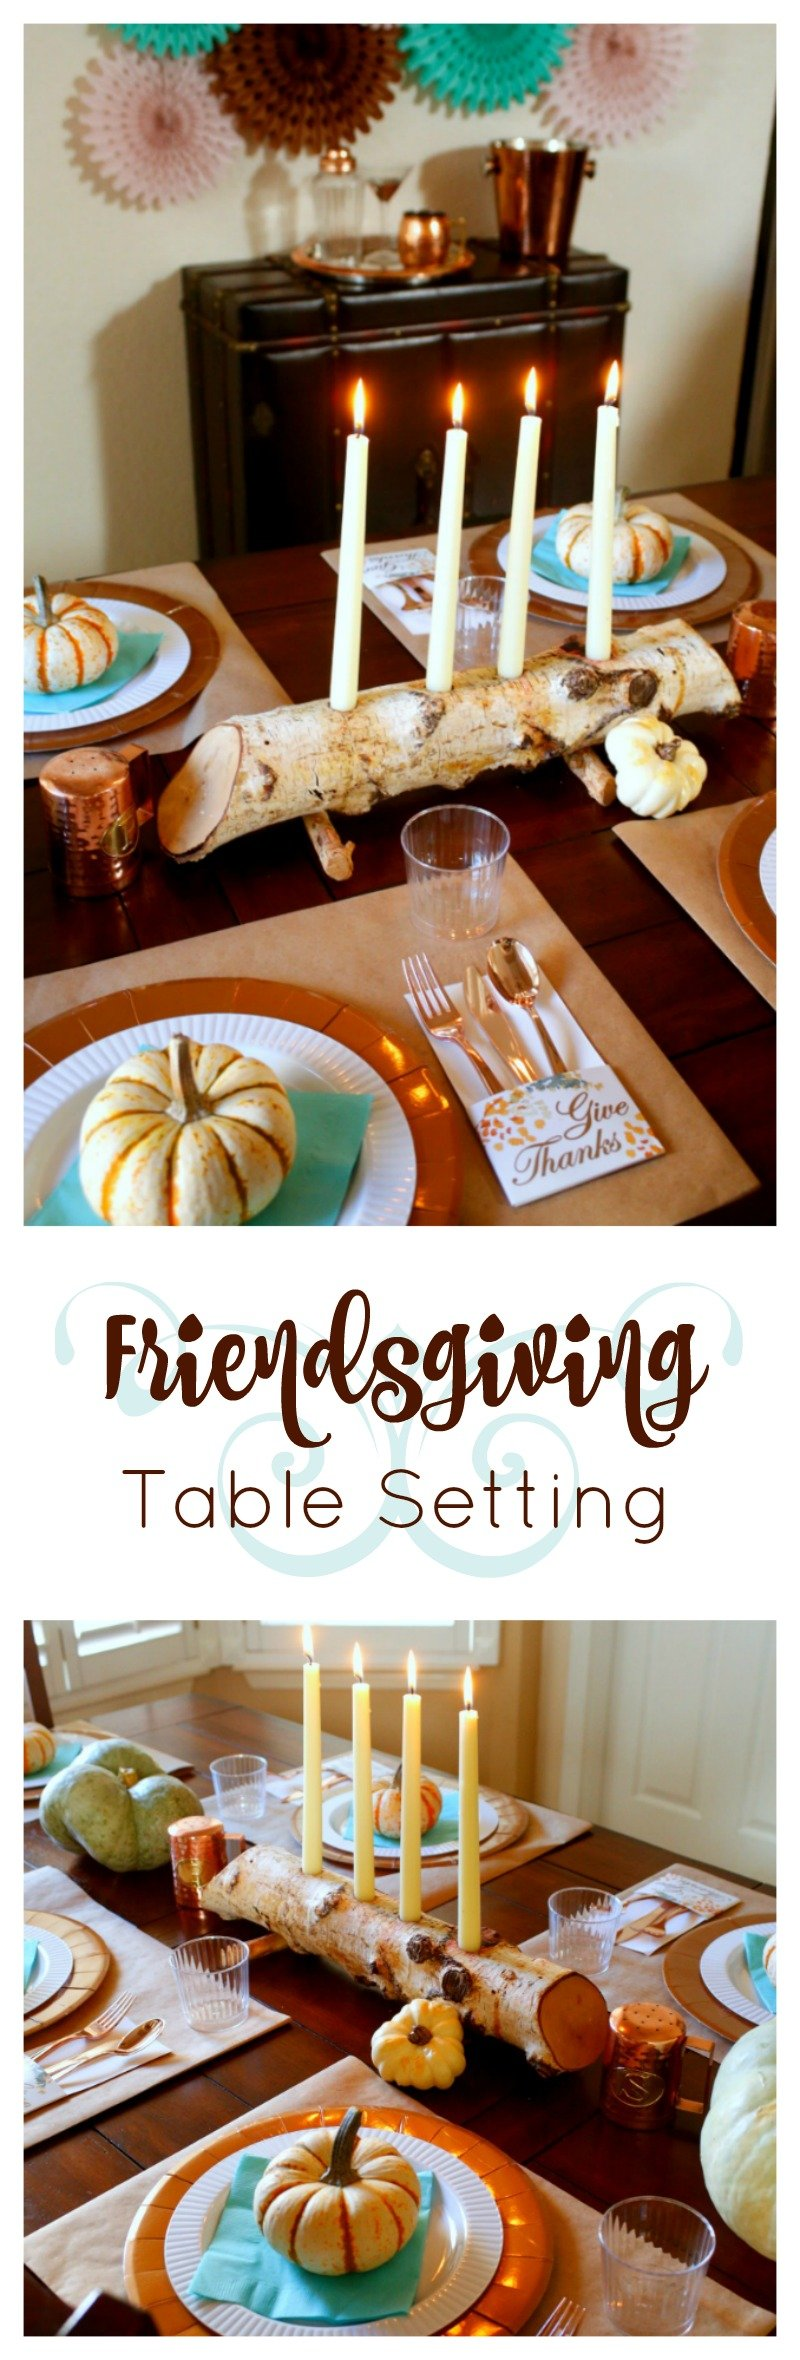 Host a fun and festive #friendsgiving with these table setting ideas from Jordan's Easy Entertaining [sponsored]